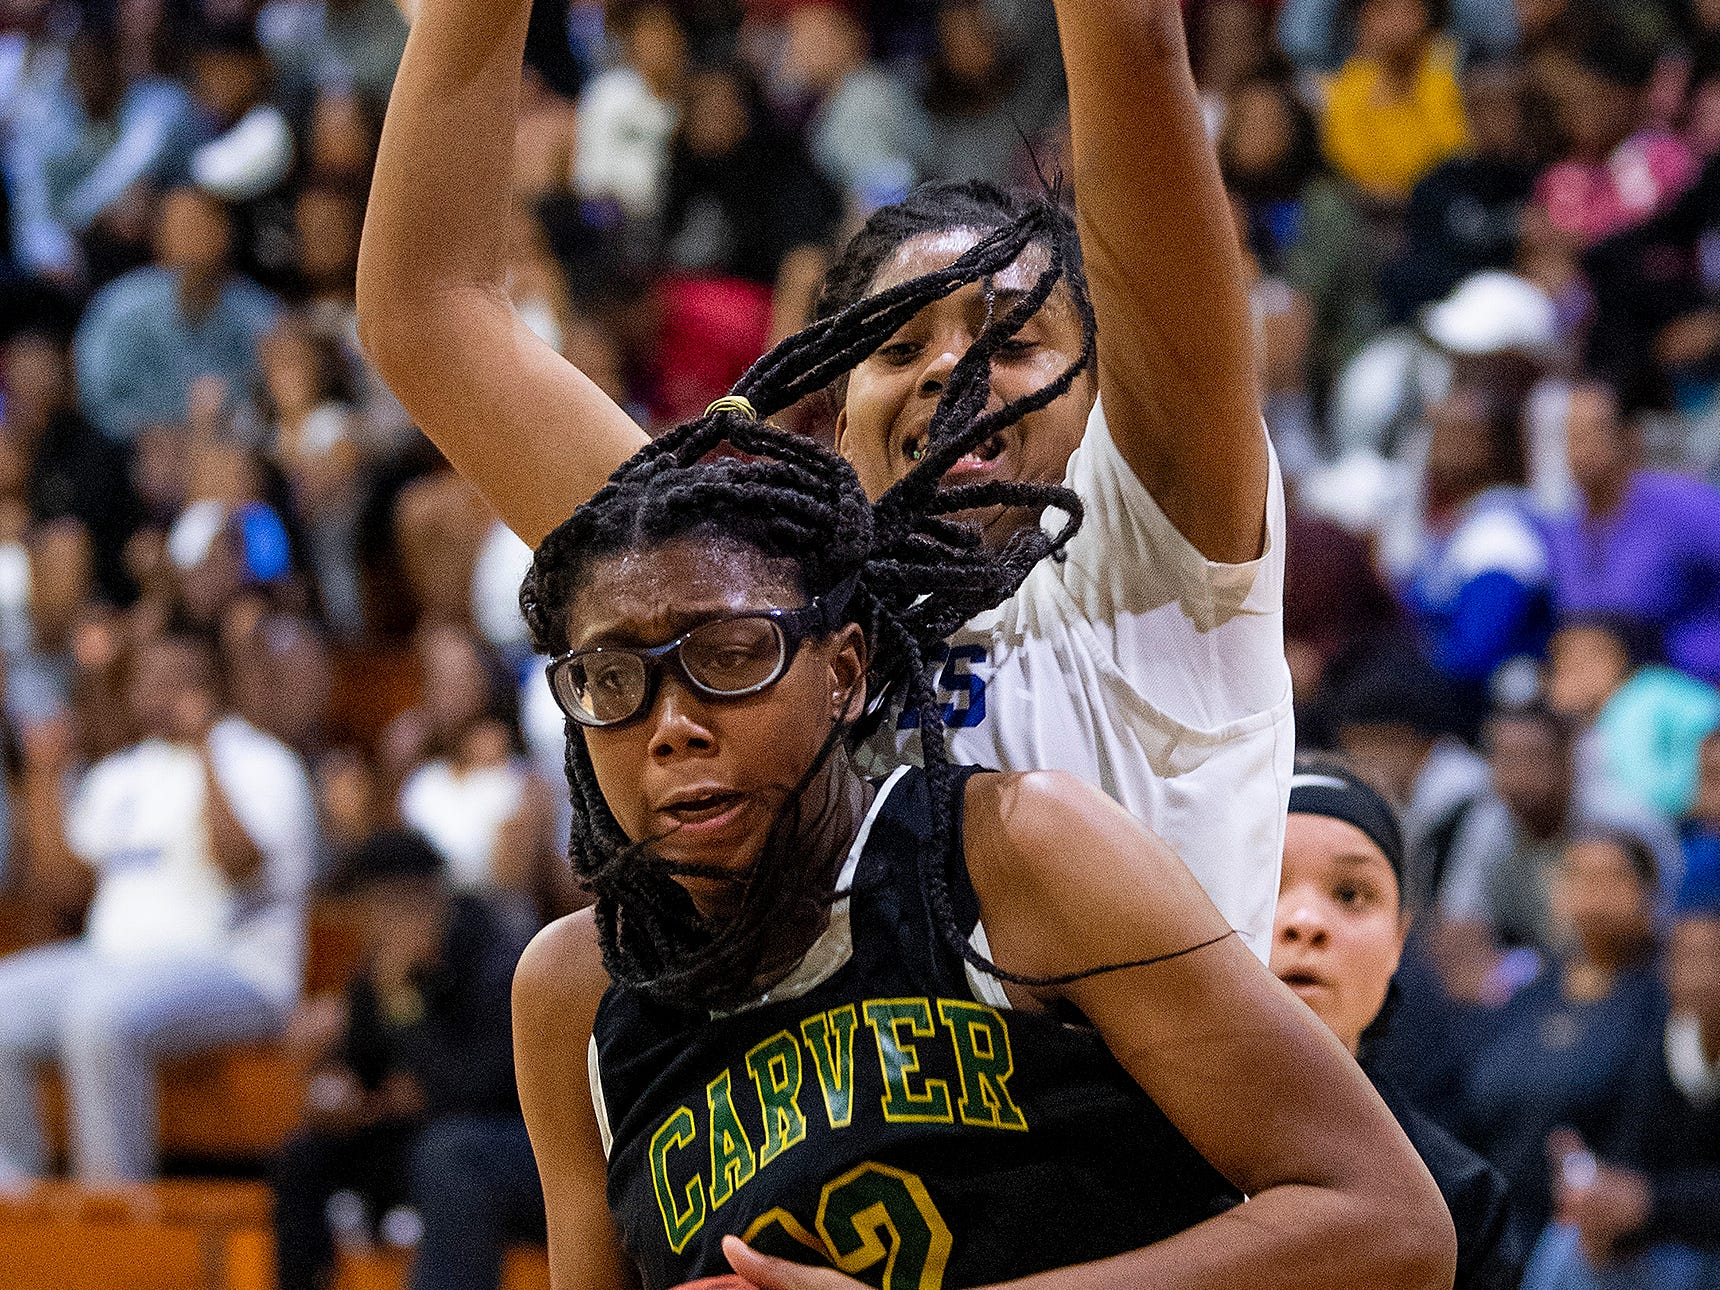 Carver's Mya Barnes (12) grabs a rebound against Lanier at the Lanier campus in Montgomery, Ala., on Friday January 11, 2019.